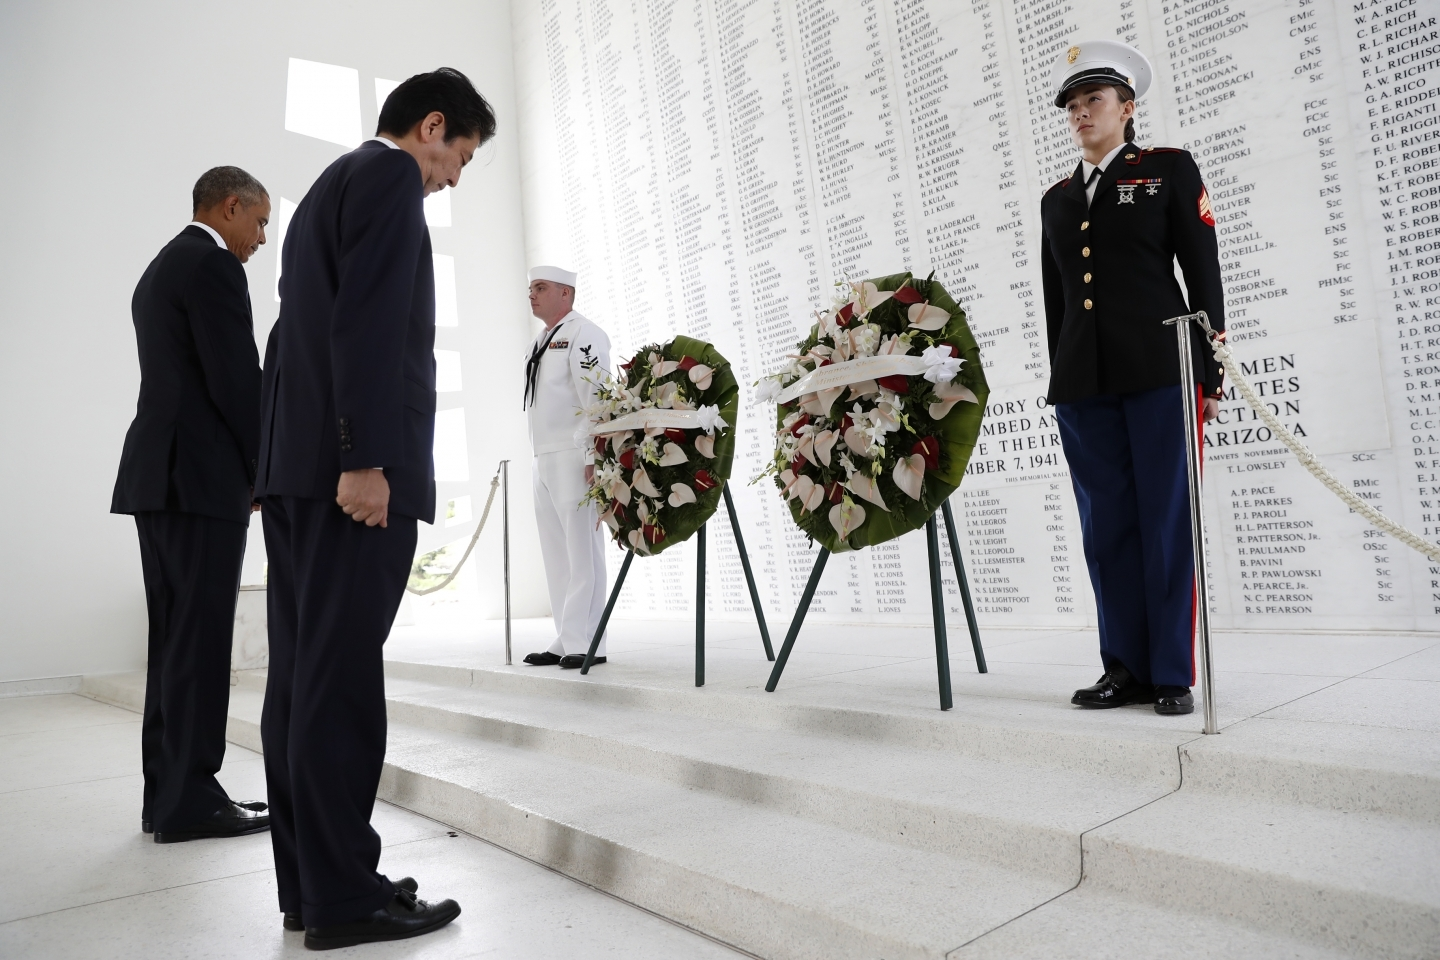 Abe & Obama Pearl Harbor / ASSOCIATED PRESS